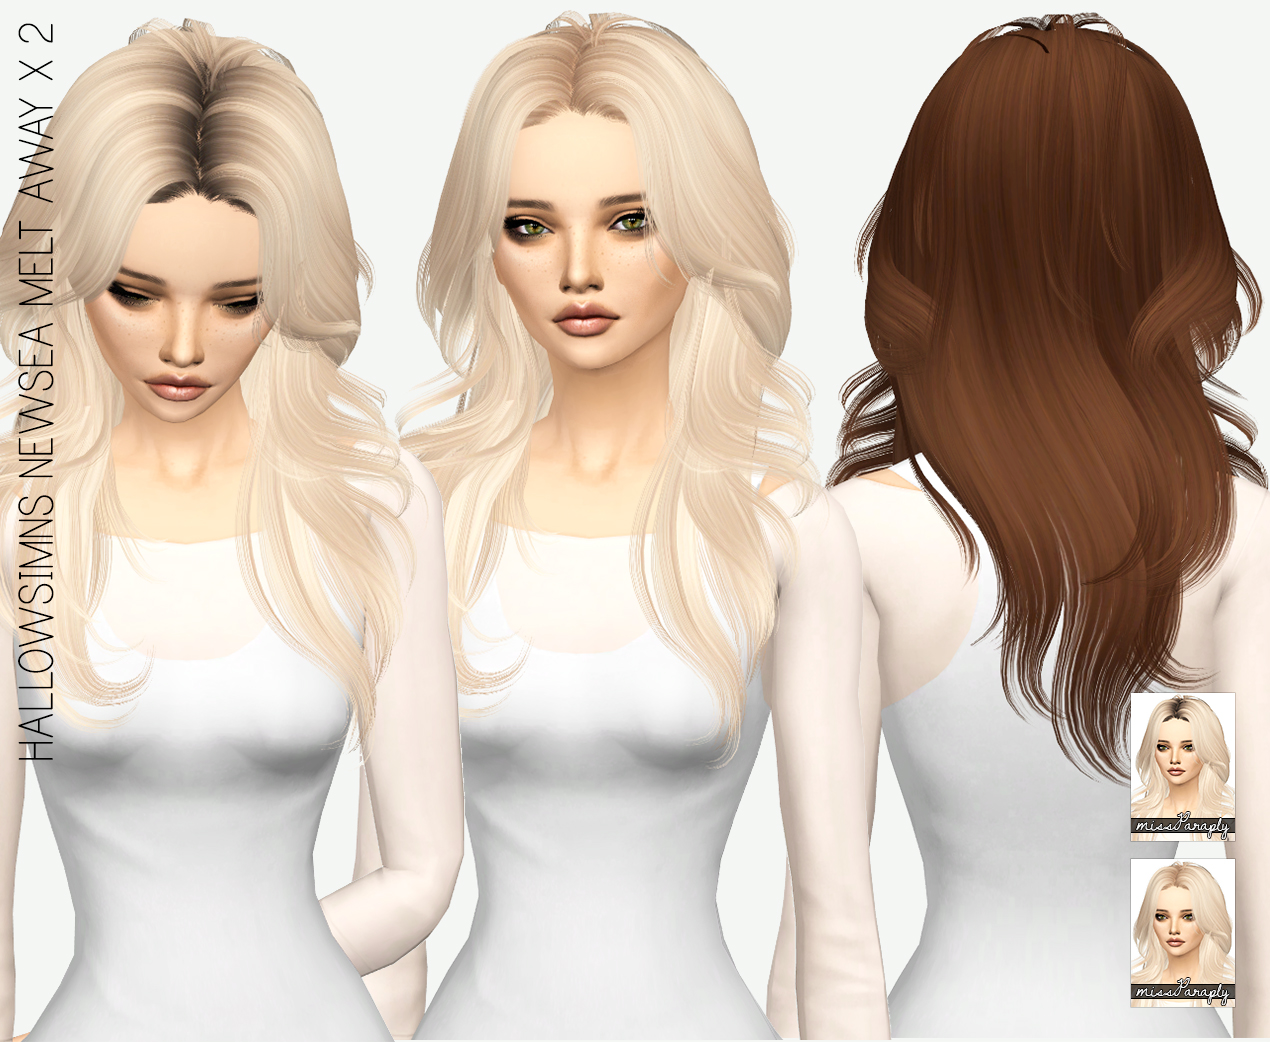 HALLOWSIMS NEWSEA MELT AWAY  in 64 Colors by MissParaply